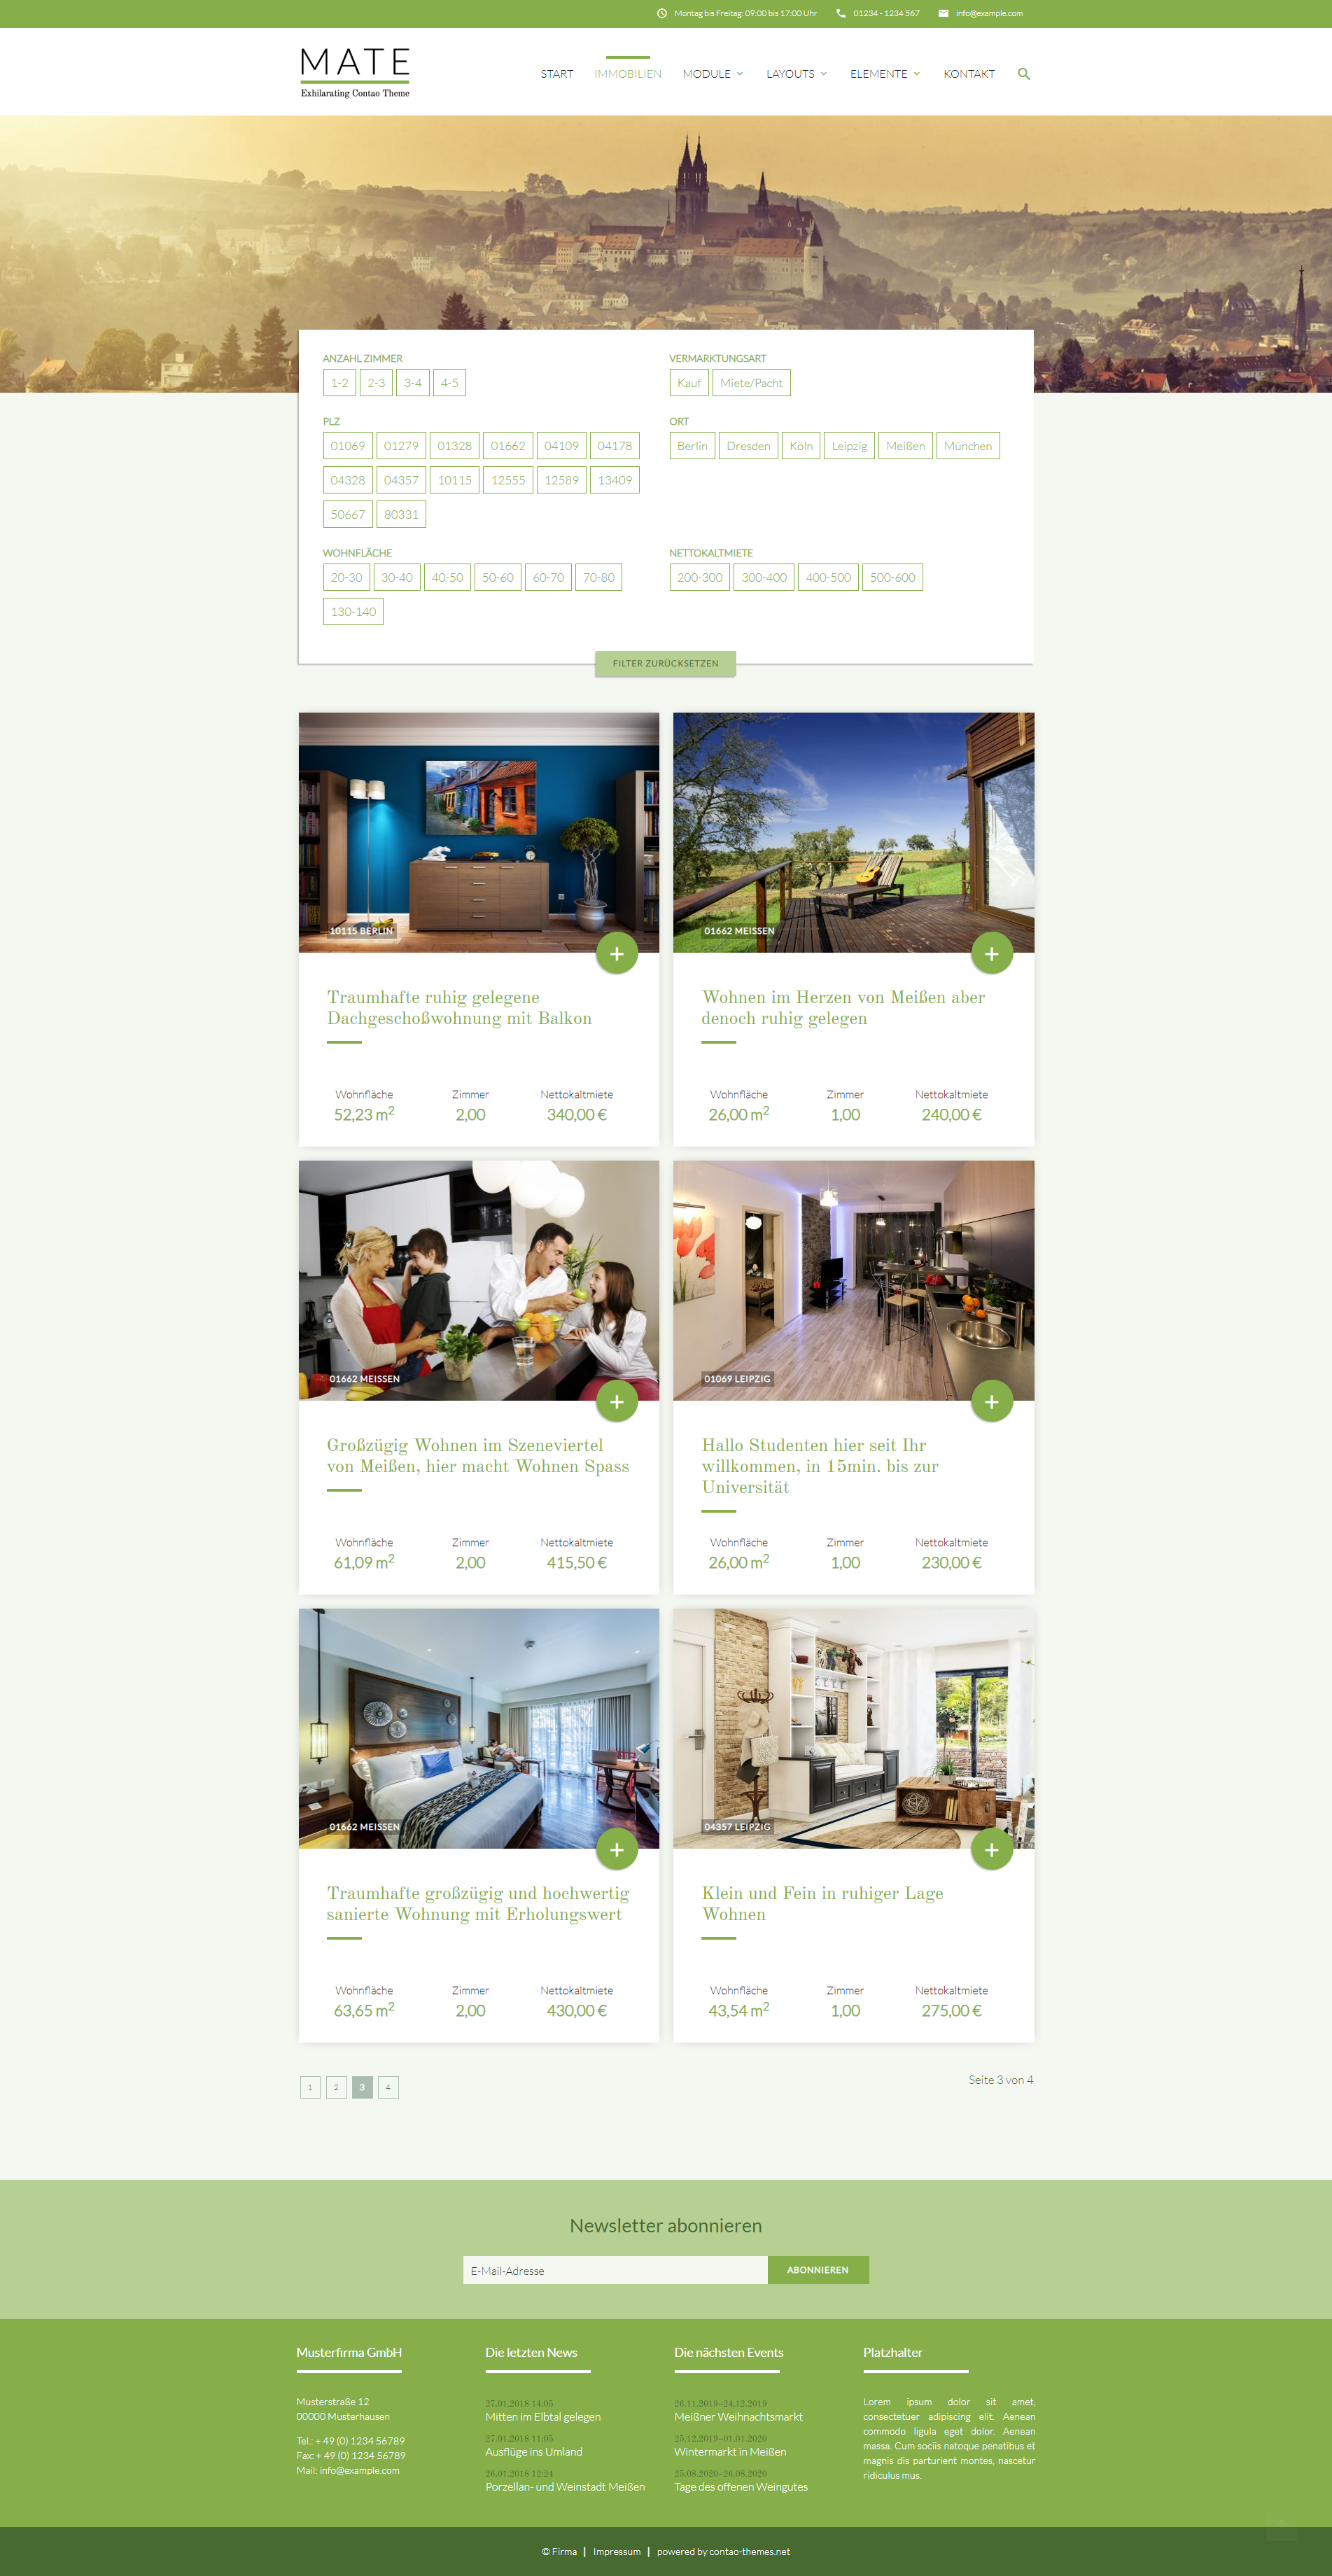 Immobilienliste mit Buttons im MATE Theme